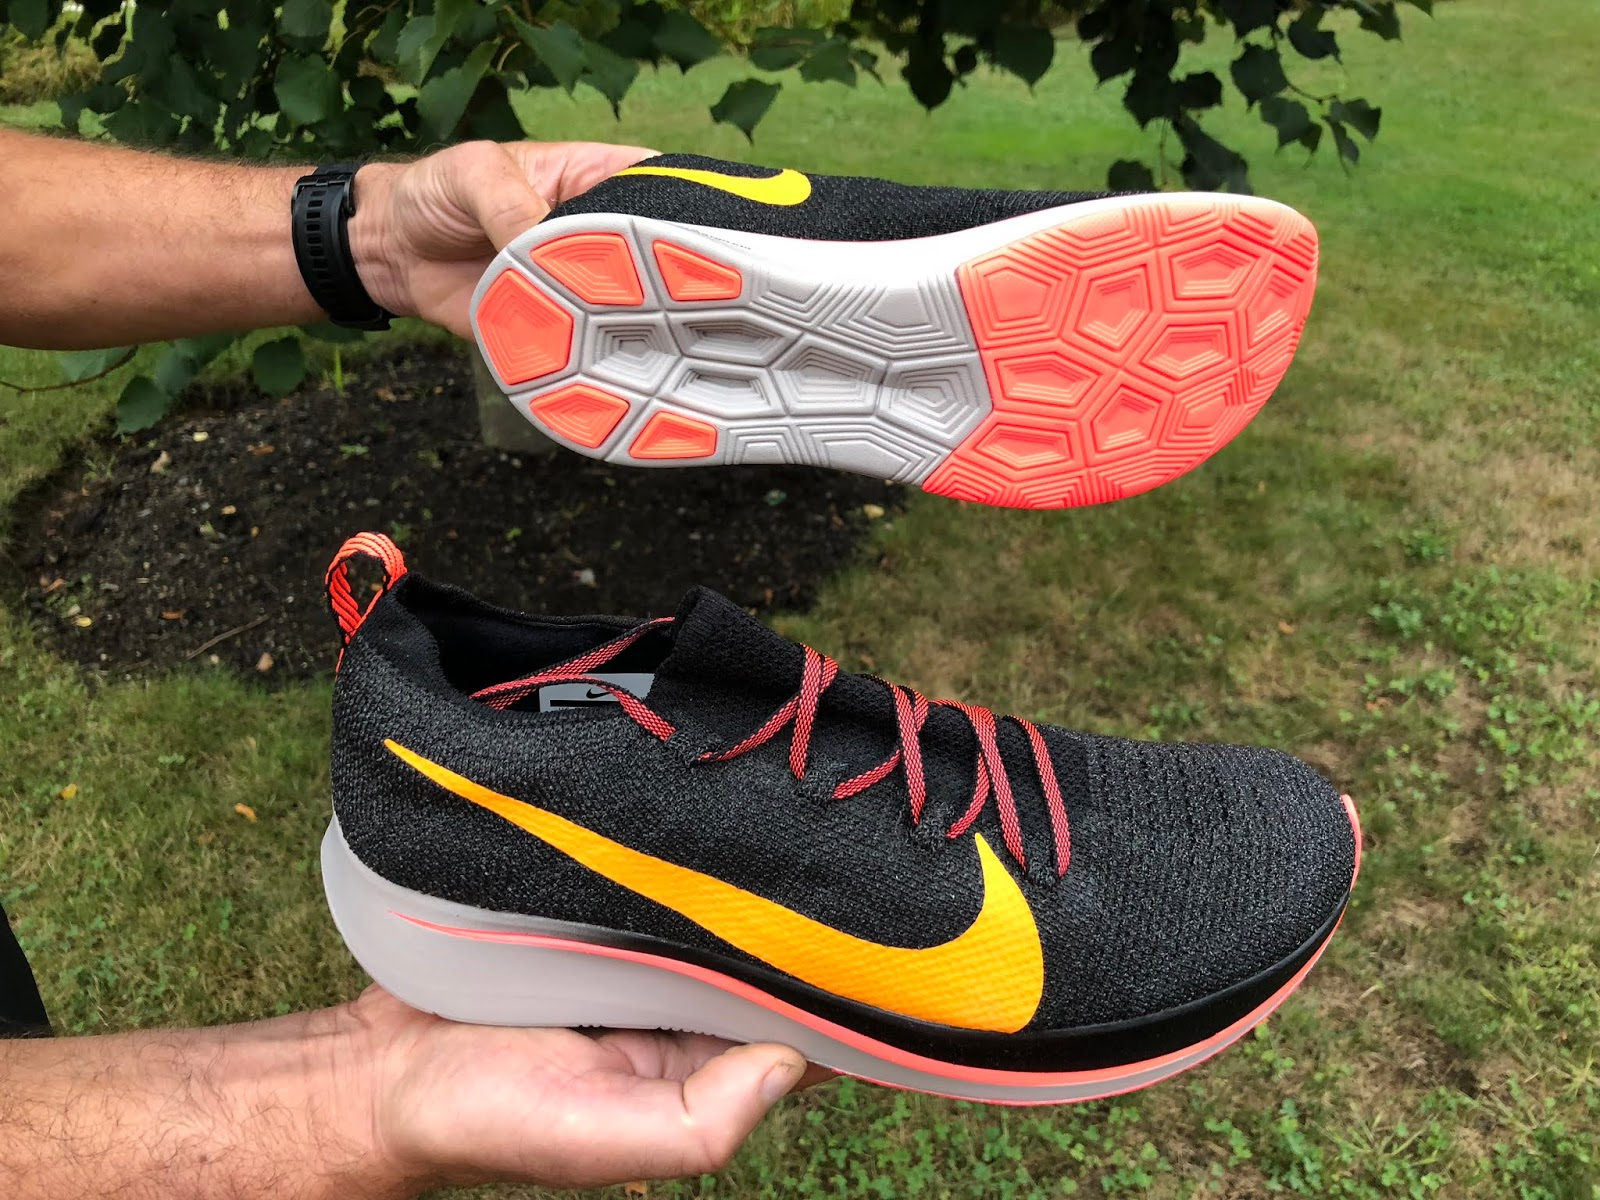 revendeur 1c49a 77ae5 Road Trail Run: Nike Zoom Fly Flyknit Initial Road Test ...